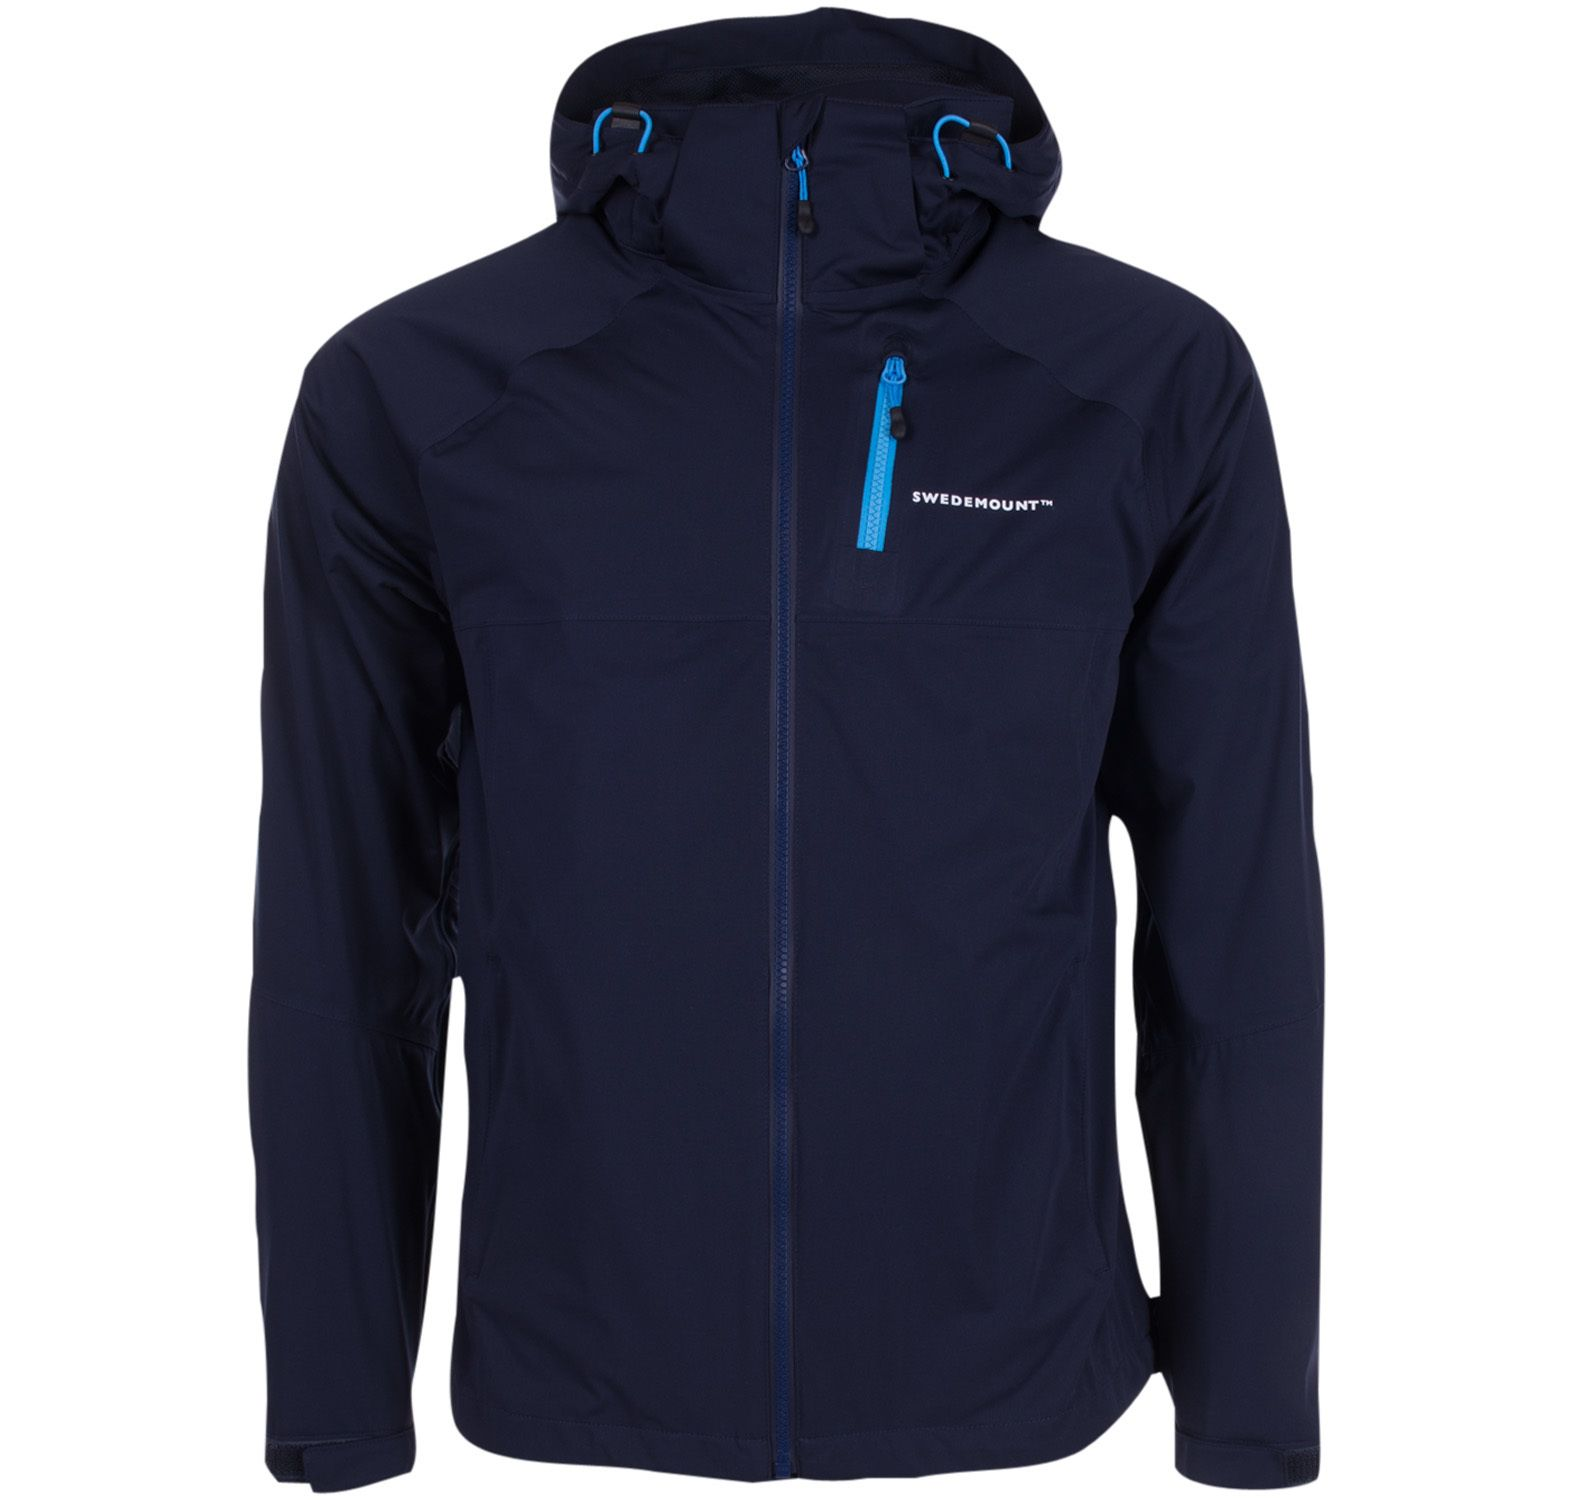 On Course Jacket, Dk Navy/Blue, 2xl, Regnkläder